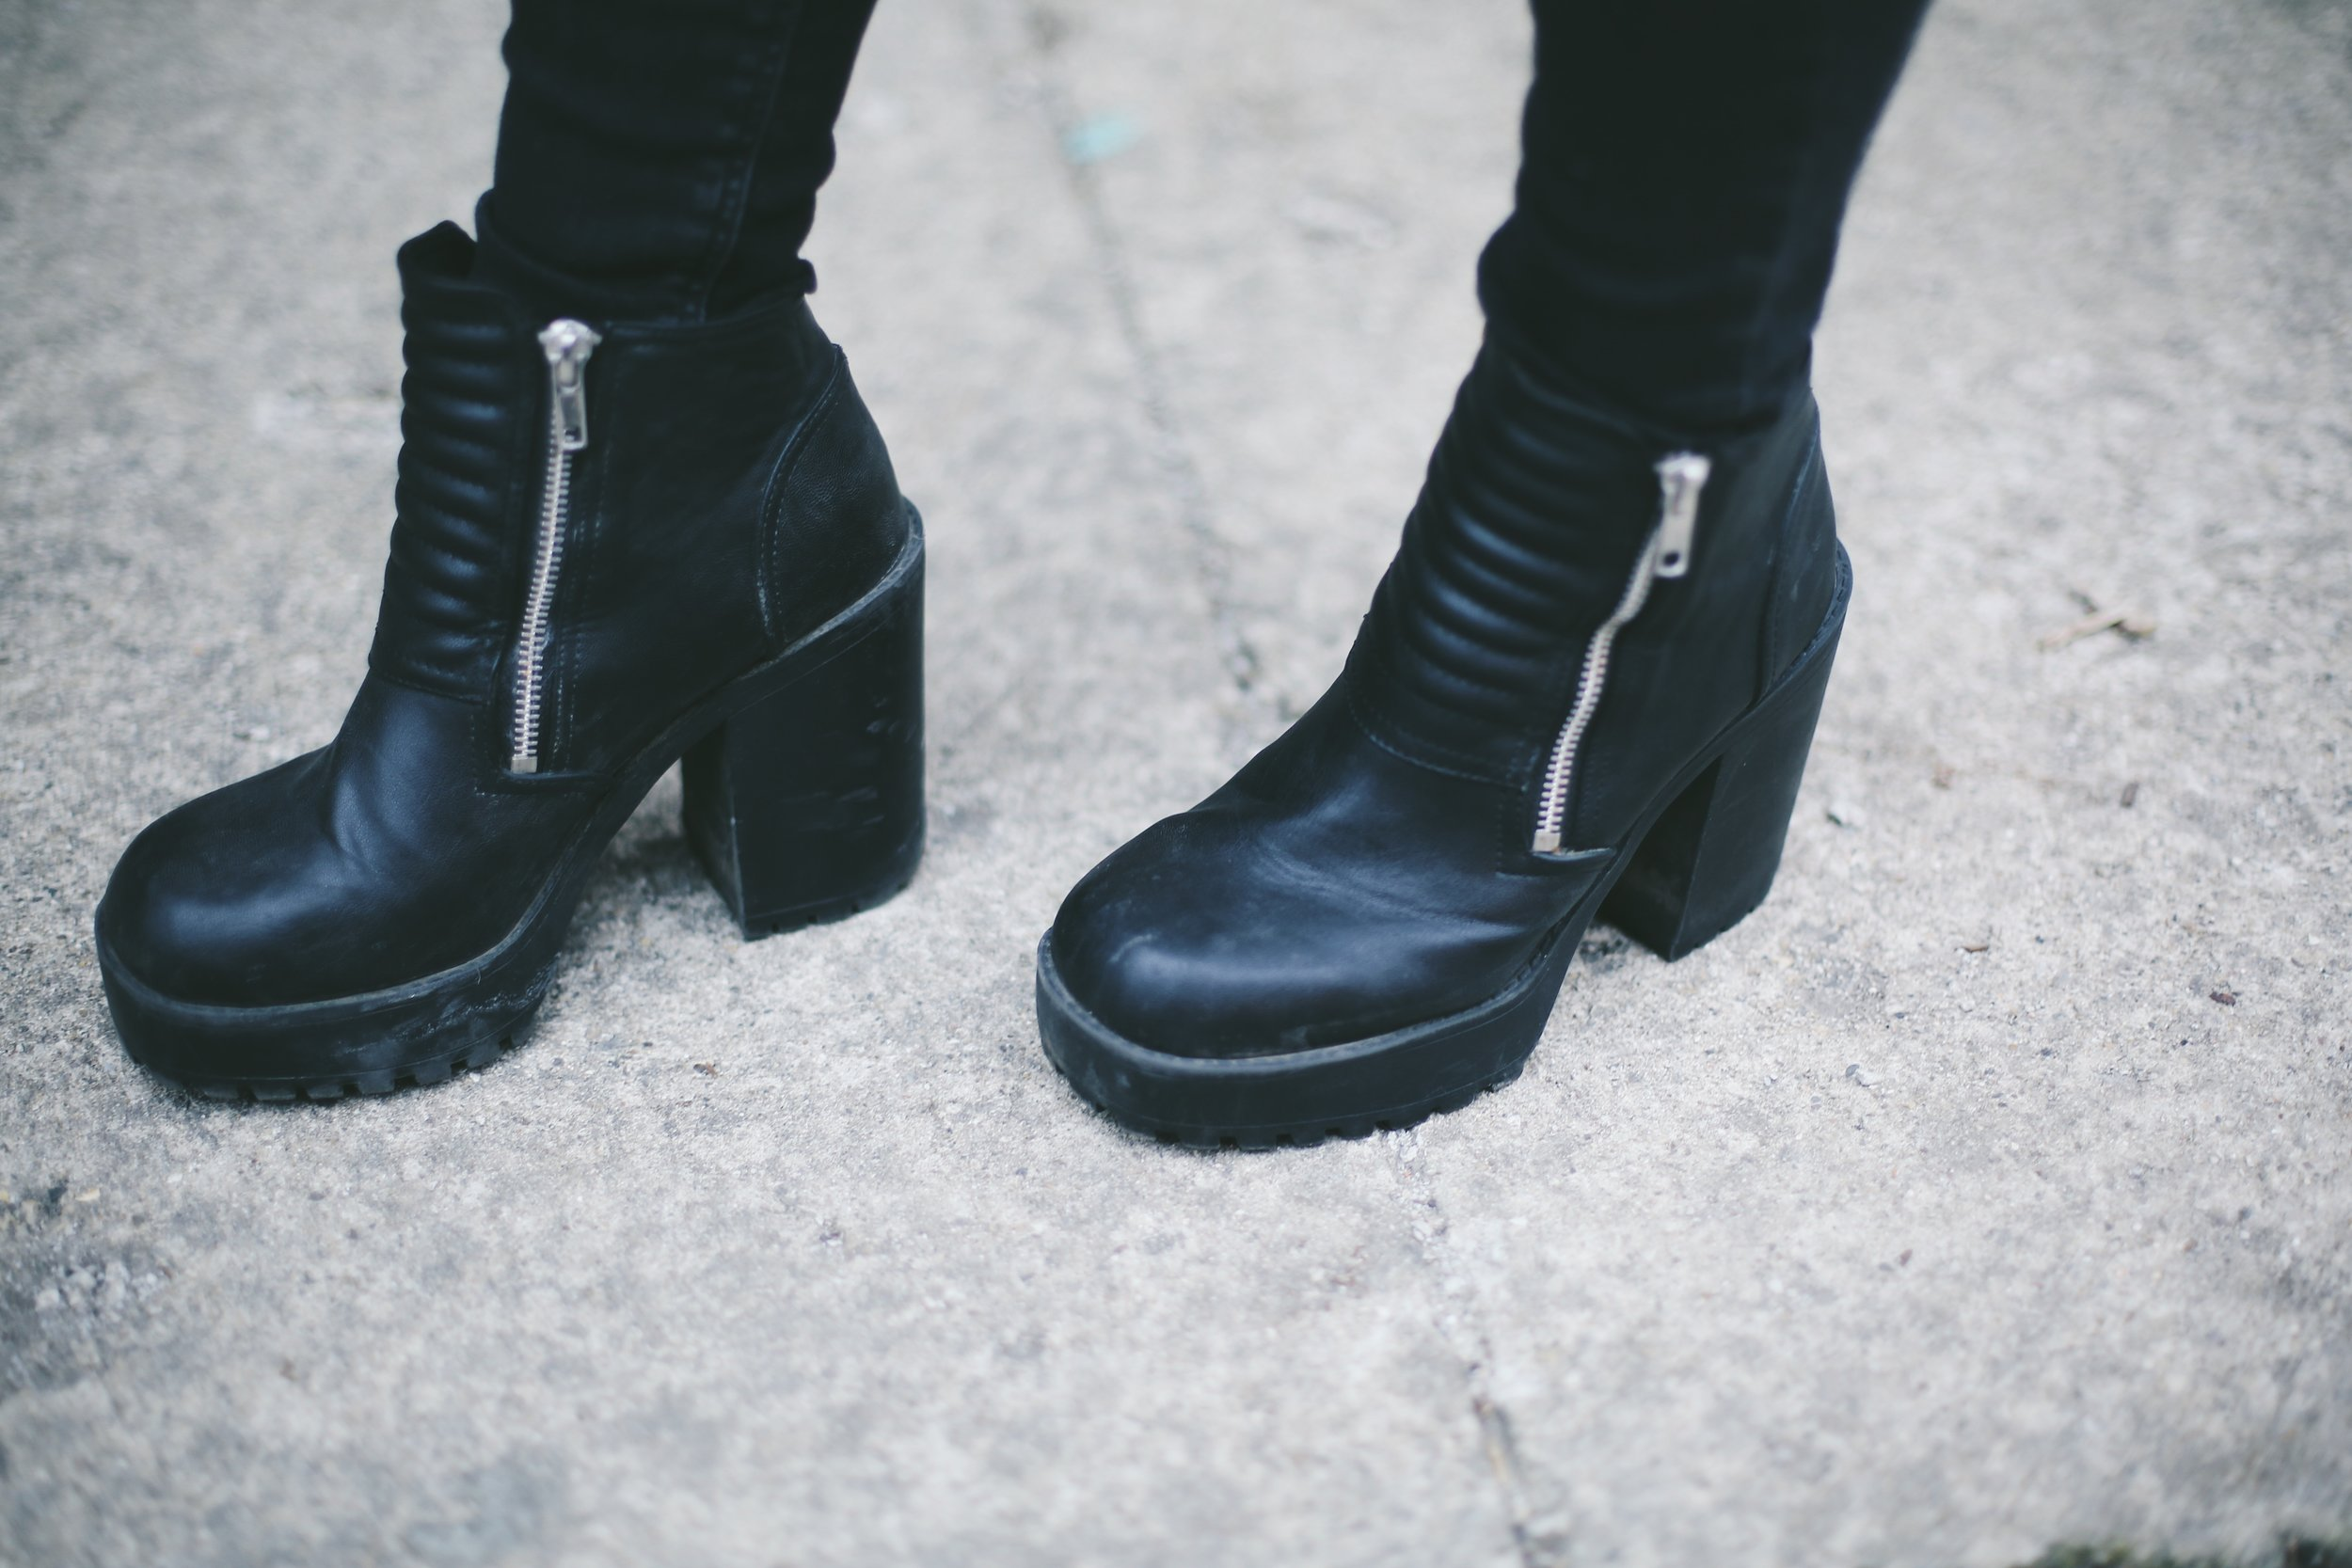 h&m chunky heeled boots